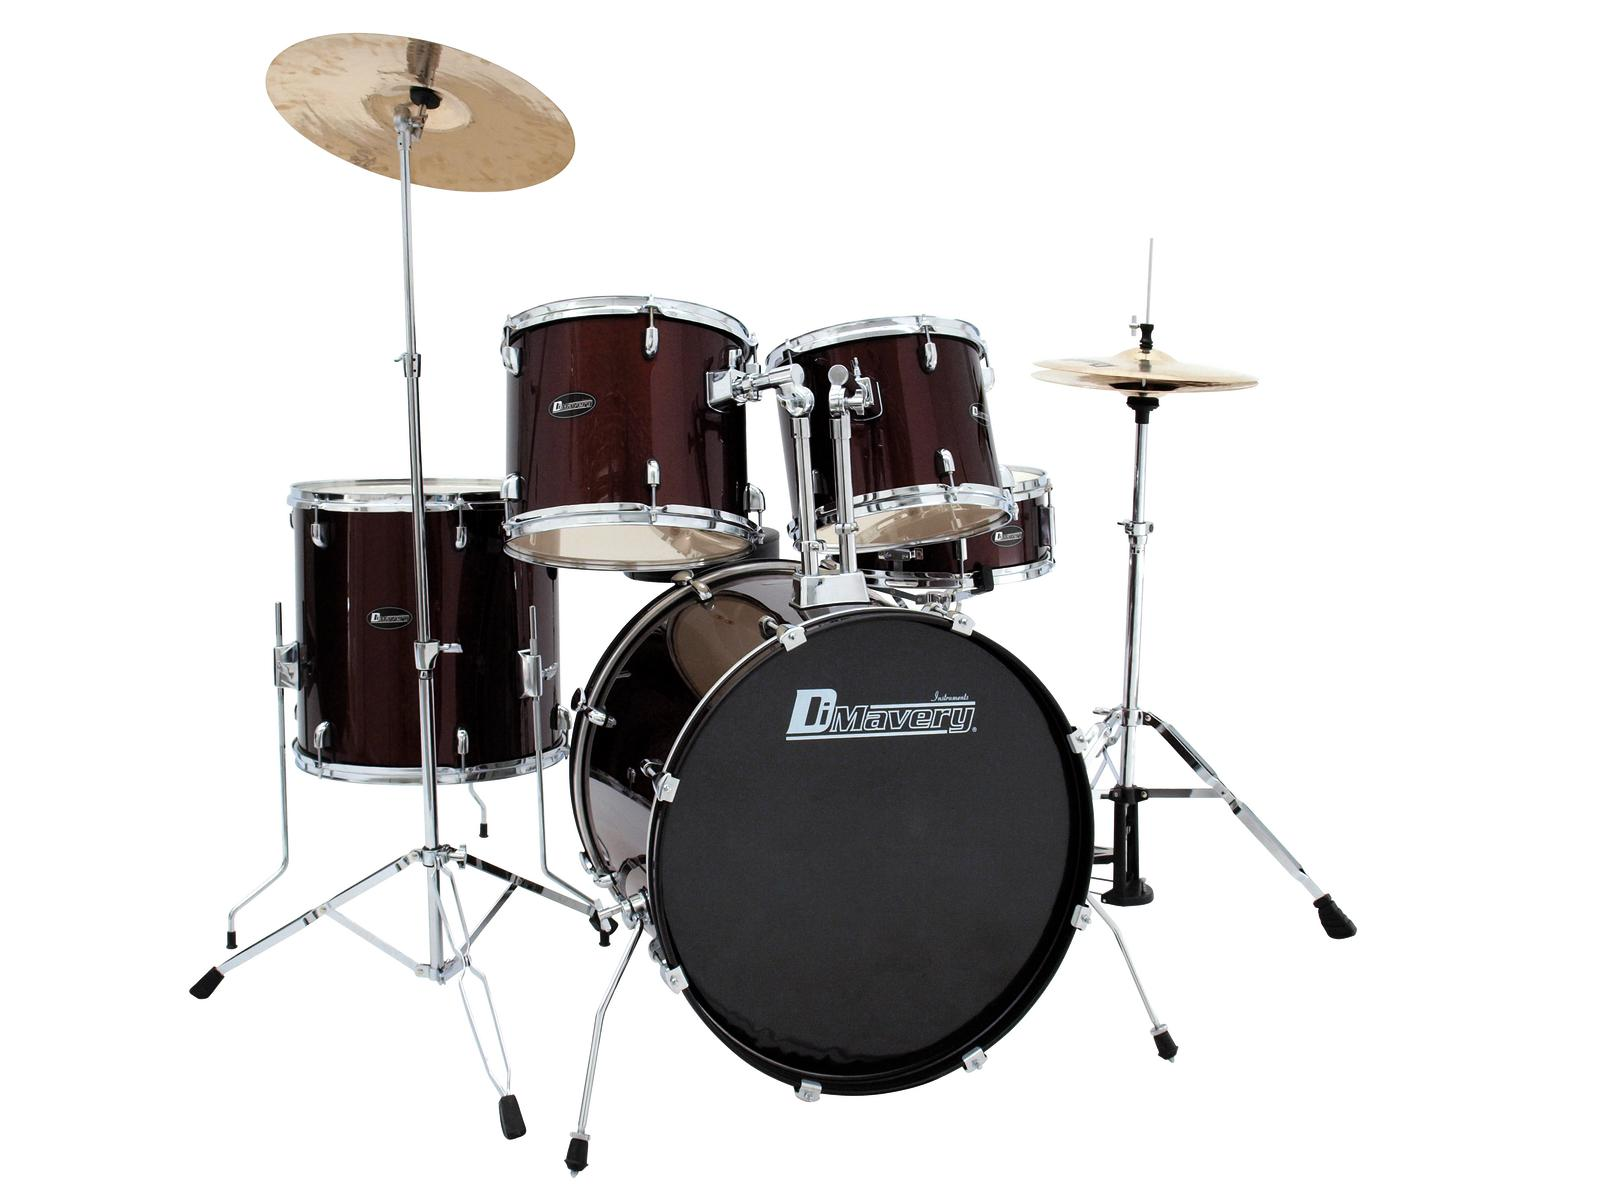 DIMAVERY DS-205 Drum set, blu